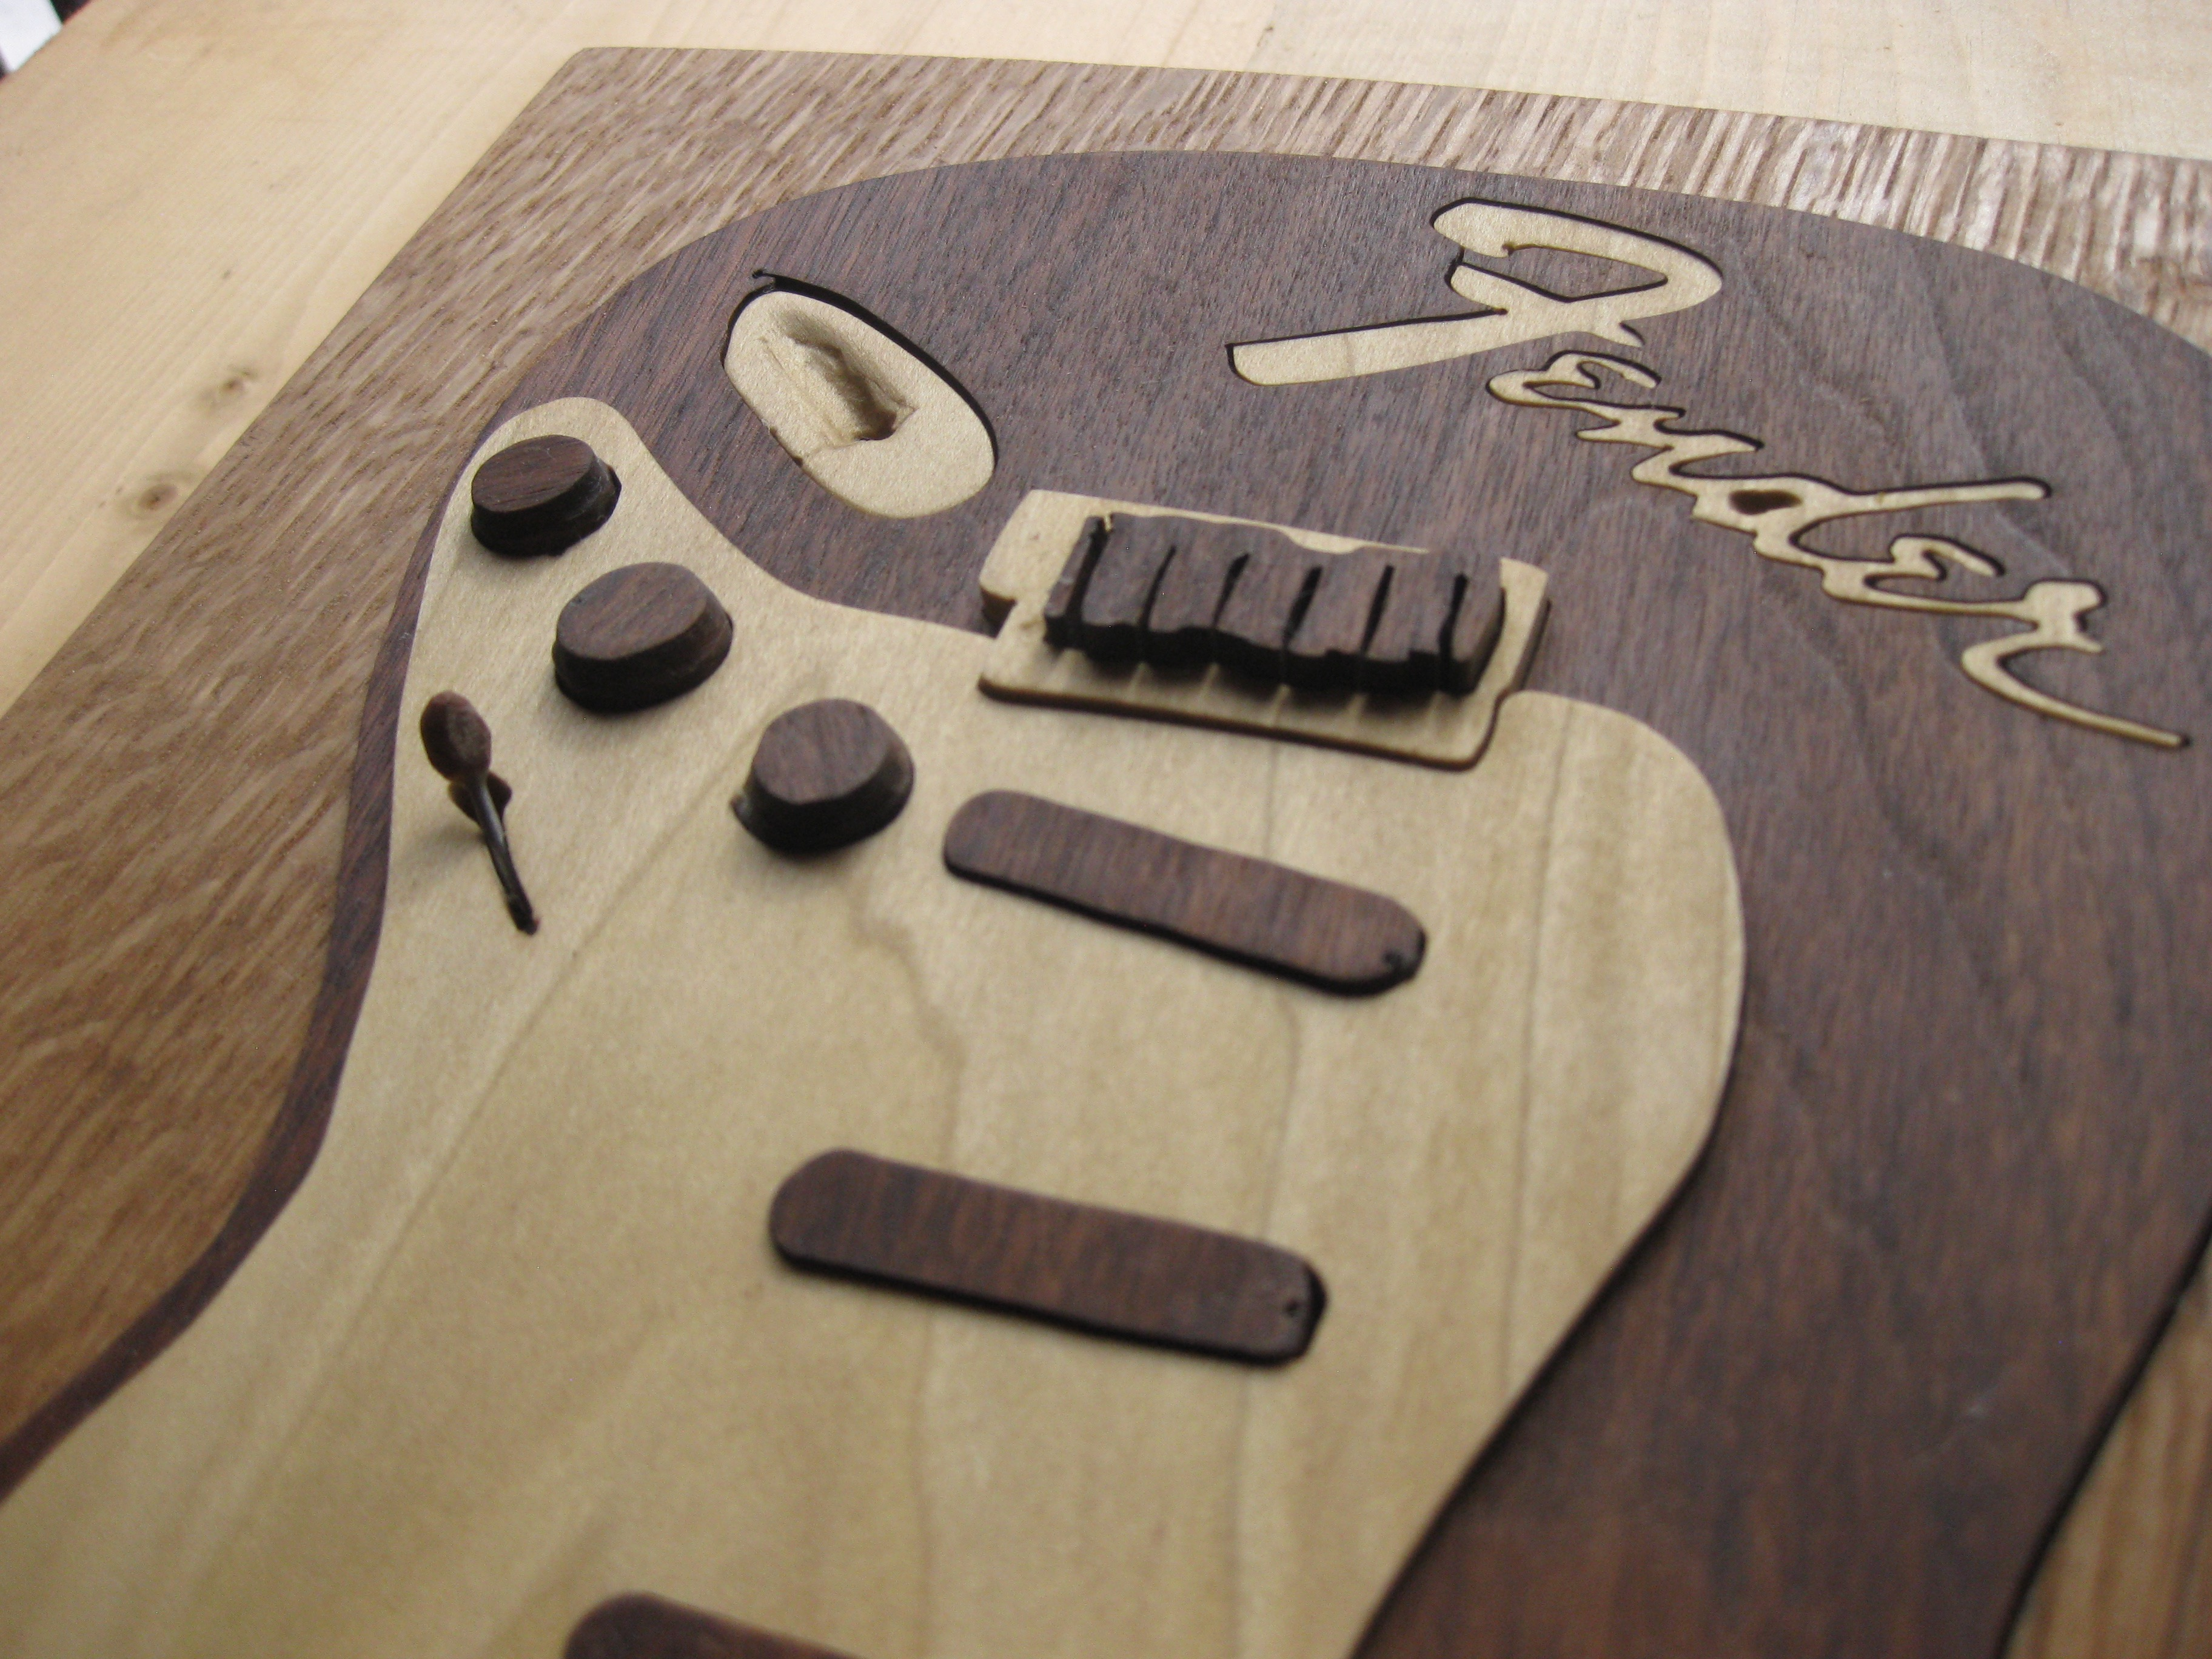 Top Slant View of Fender Guitar Art Puzzle